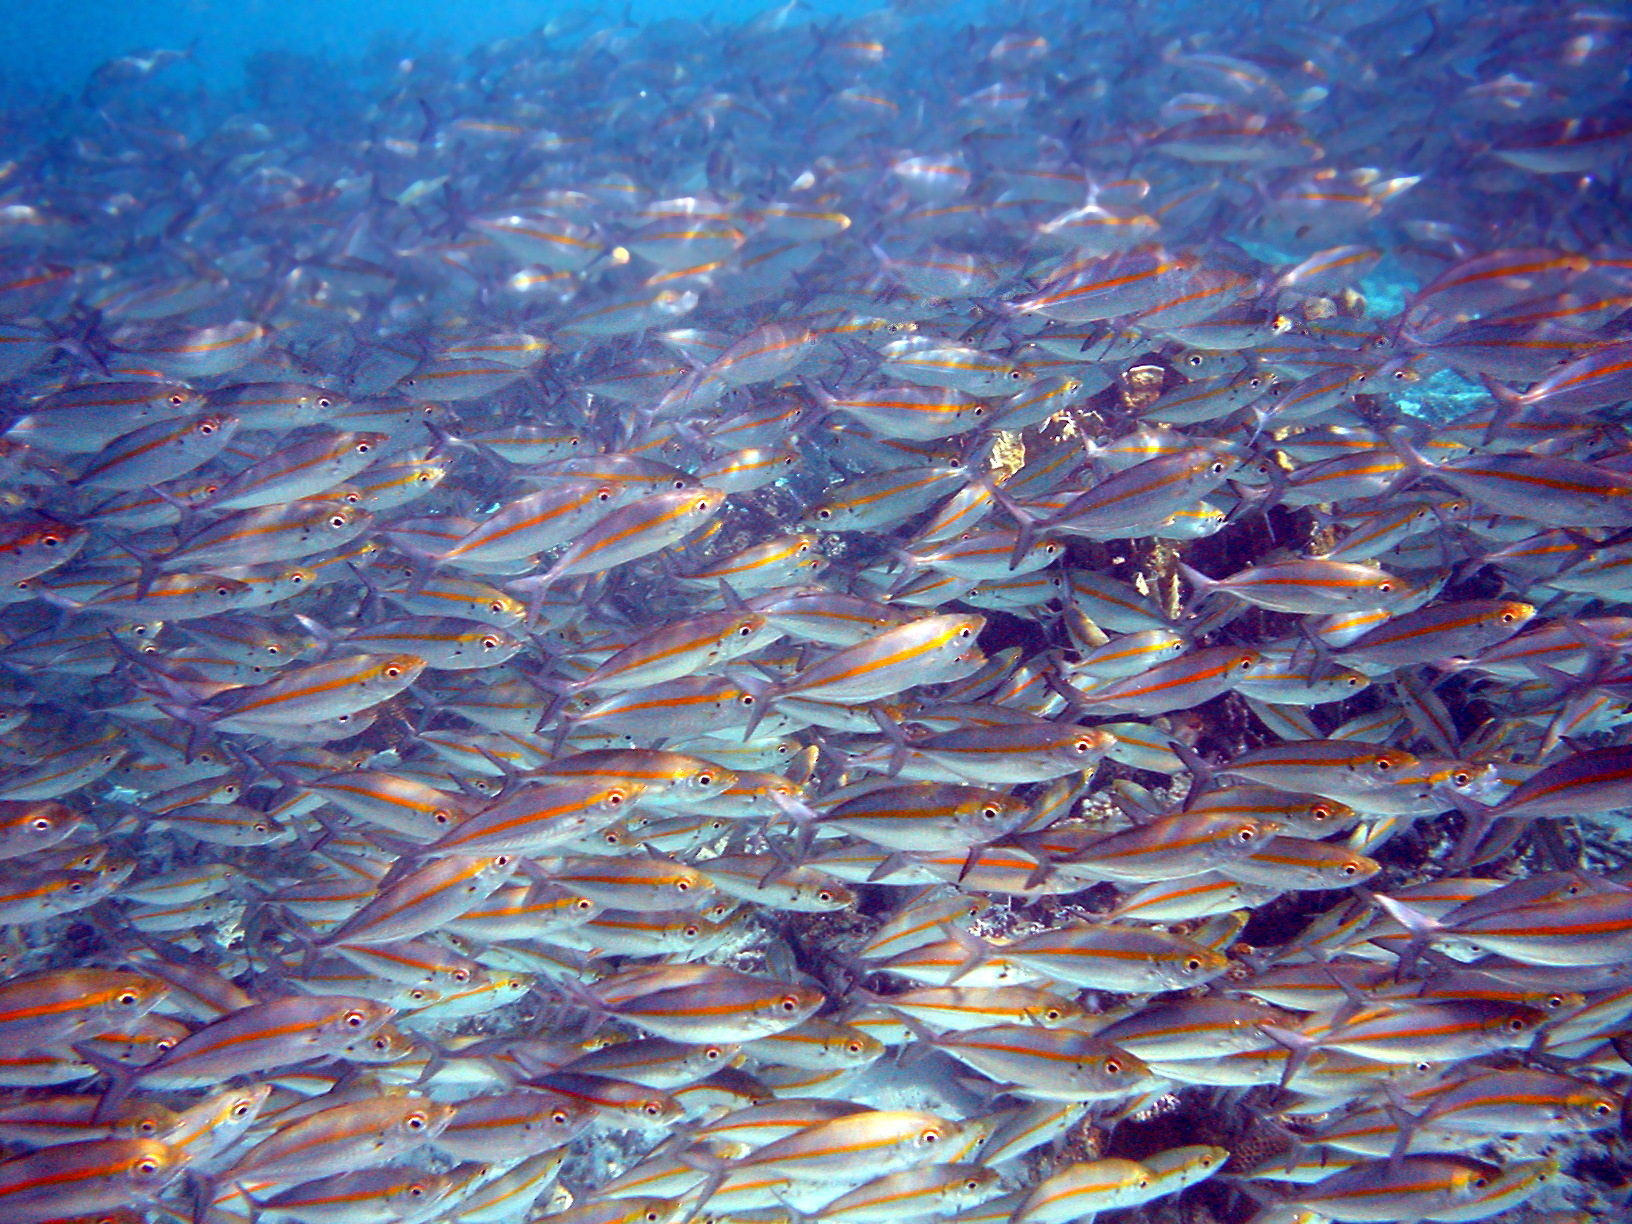 Photo of thousands of fish separated from each other by distances of 2 inches (51 mm) or less